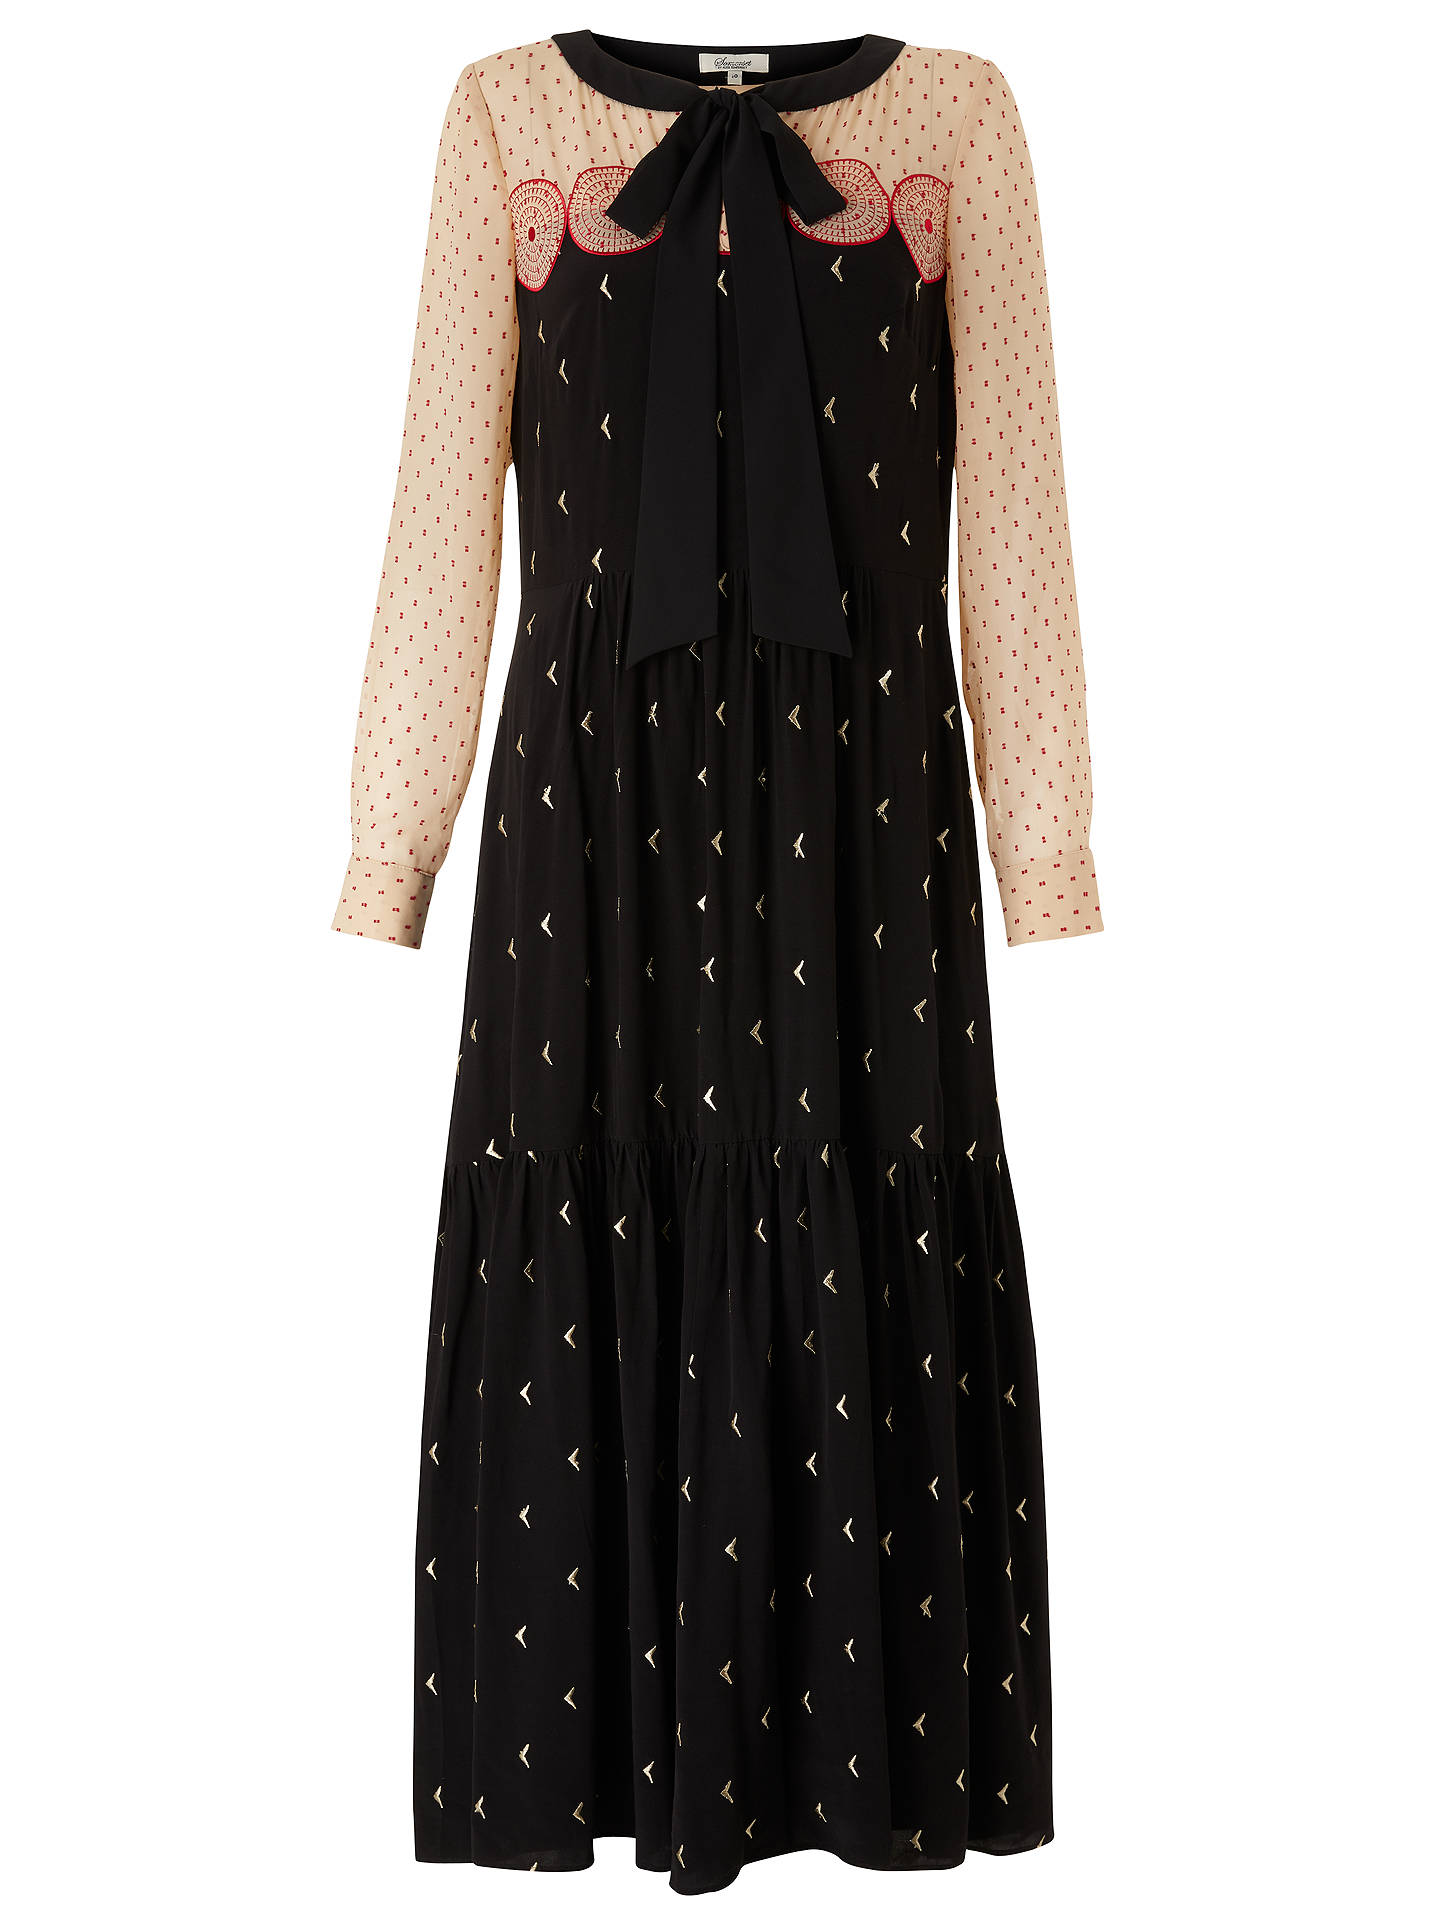 BuySomerset by Alice Temperley Embroidered Long Sleeve Maxi Dress, Black, 8 Online at johnlewis.com